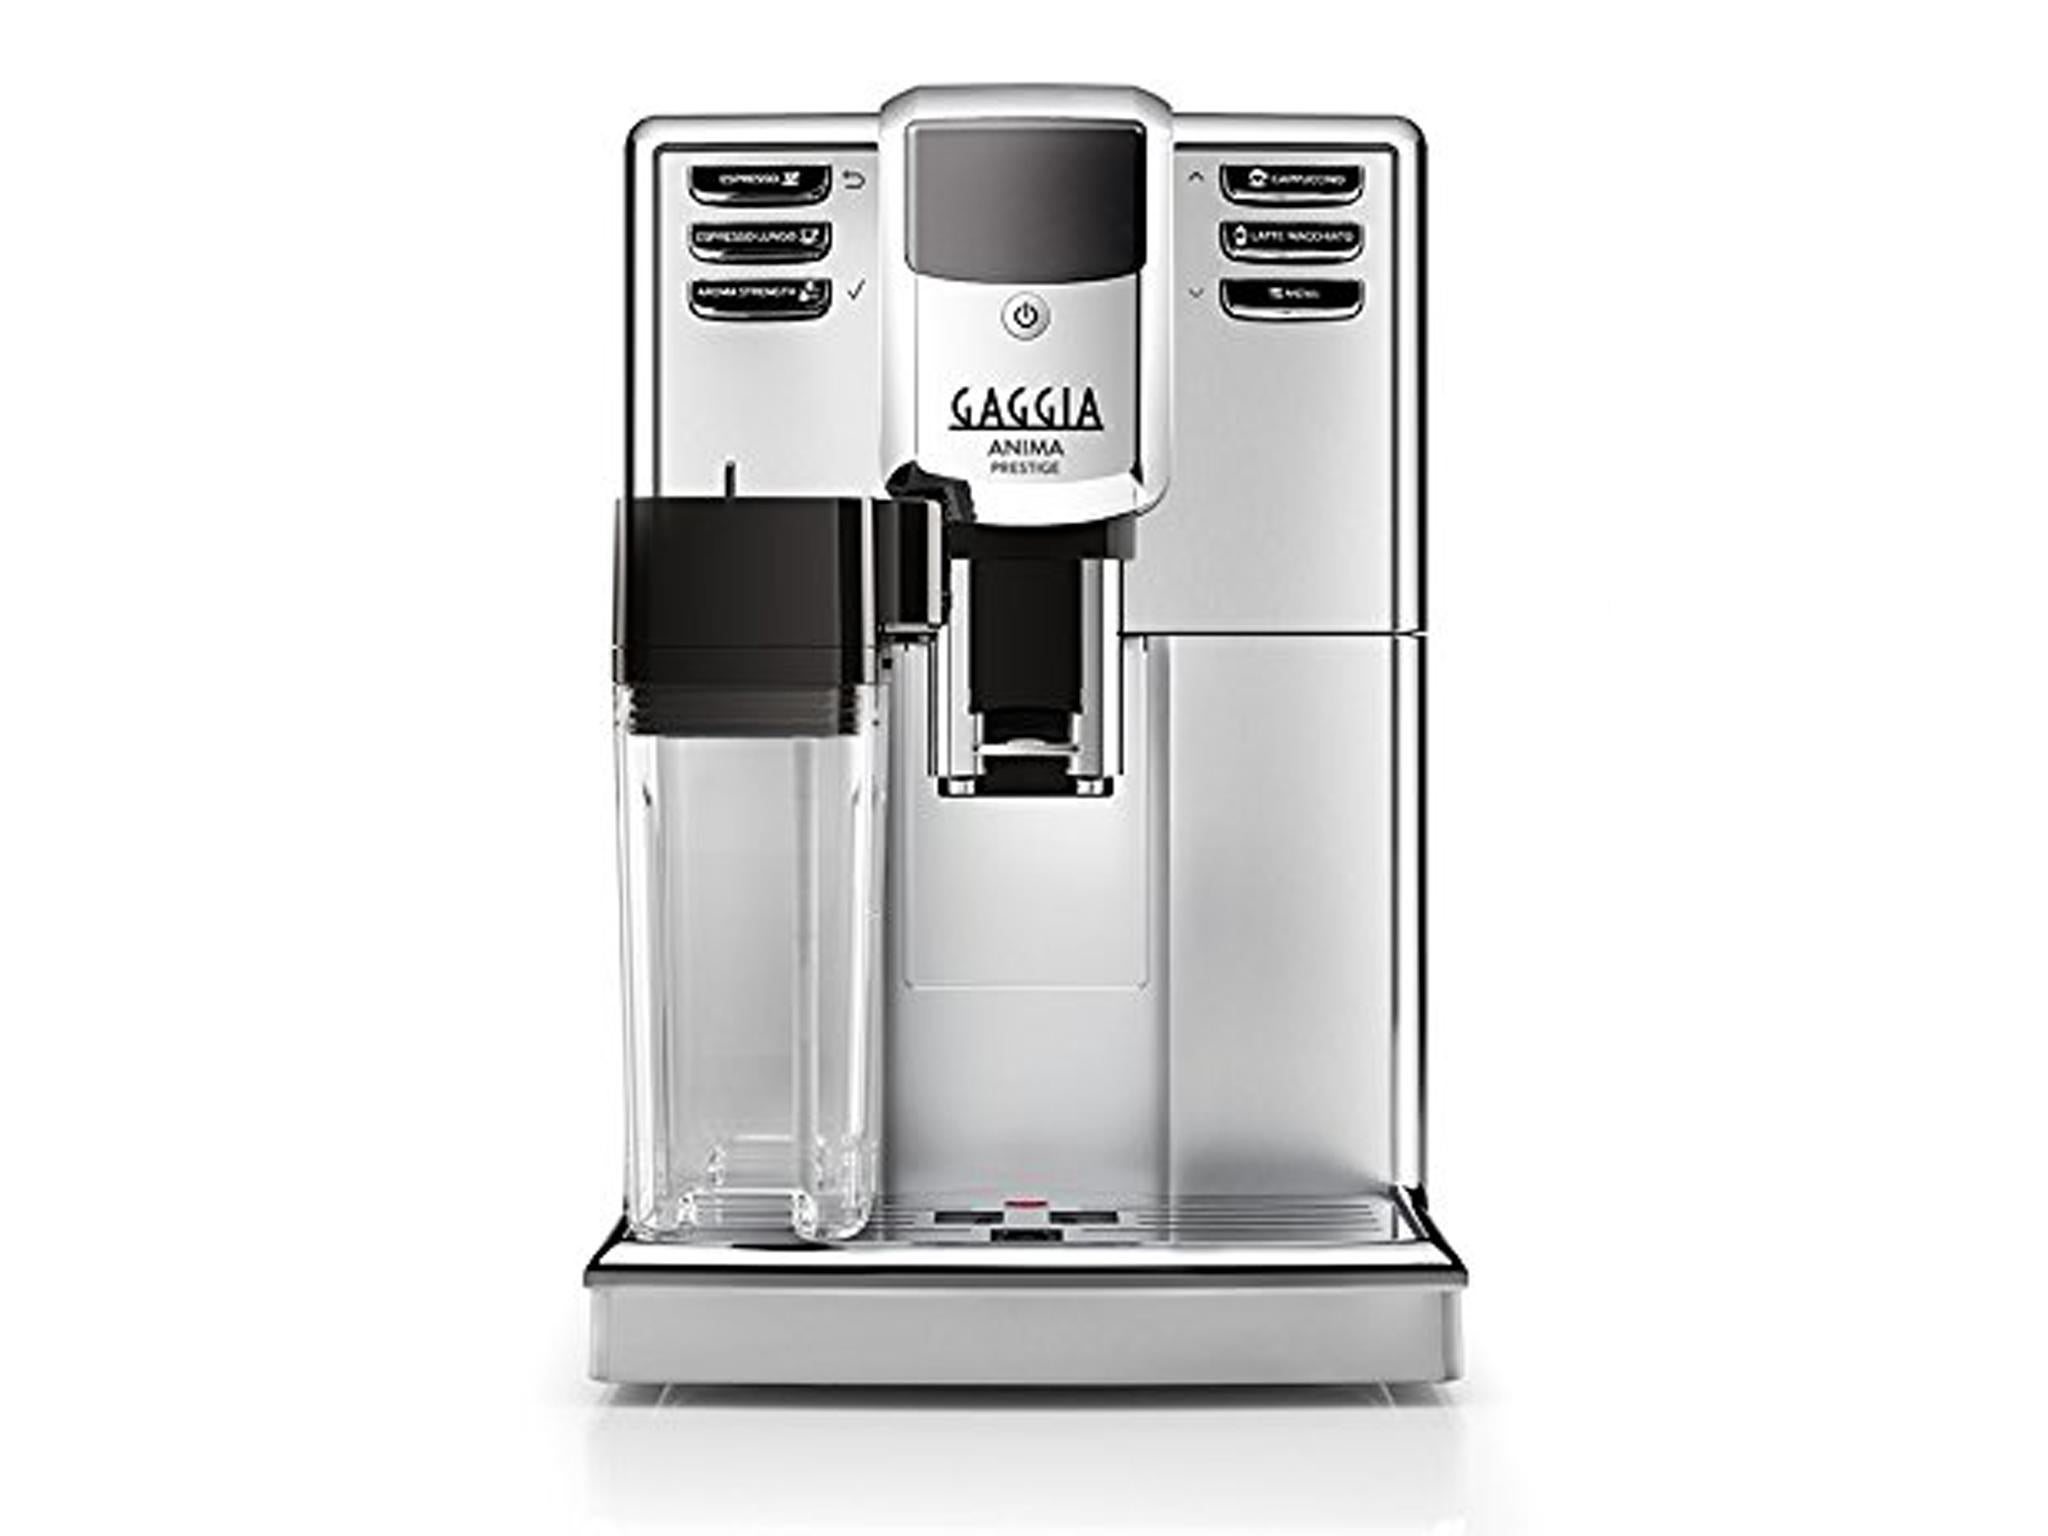 european cup office coffee. It\u0027s Hard To Go Wrong With A Gaggia, And When It Comes Bean Cup Coffee Machines, The Anima Is One Of Clear Standard-setters. European Office